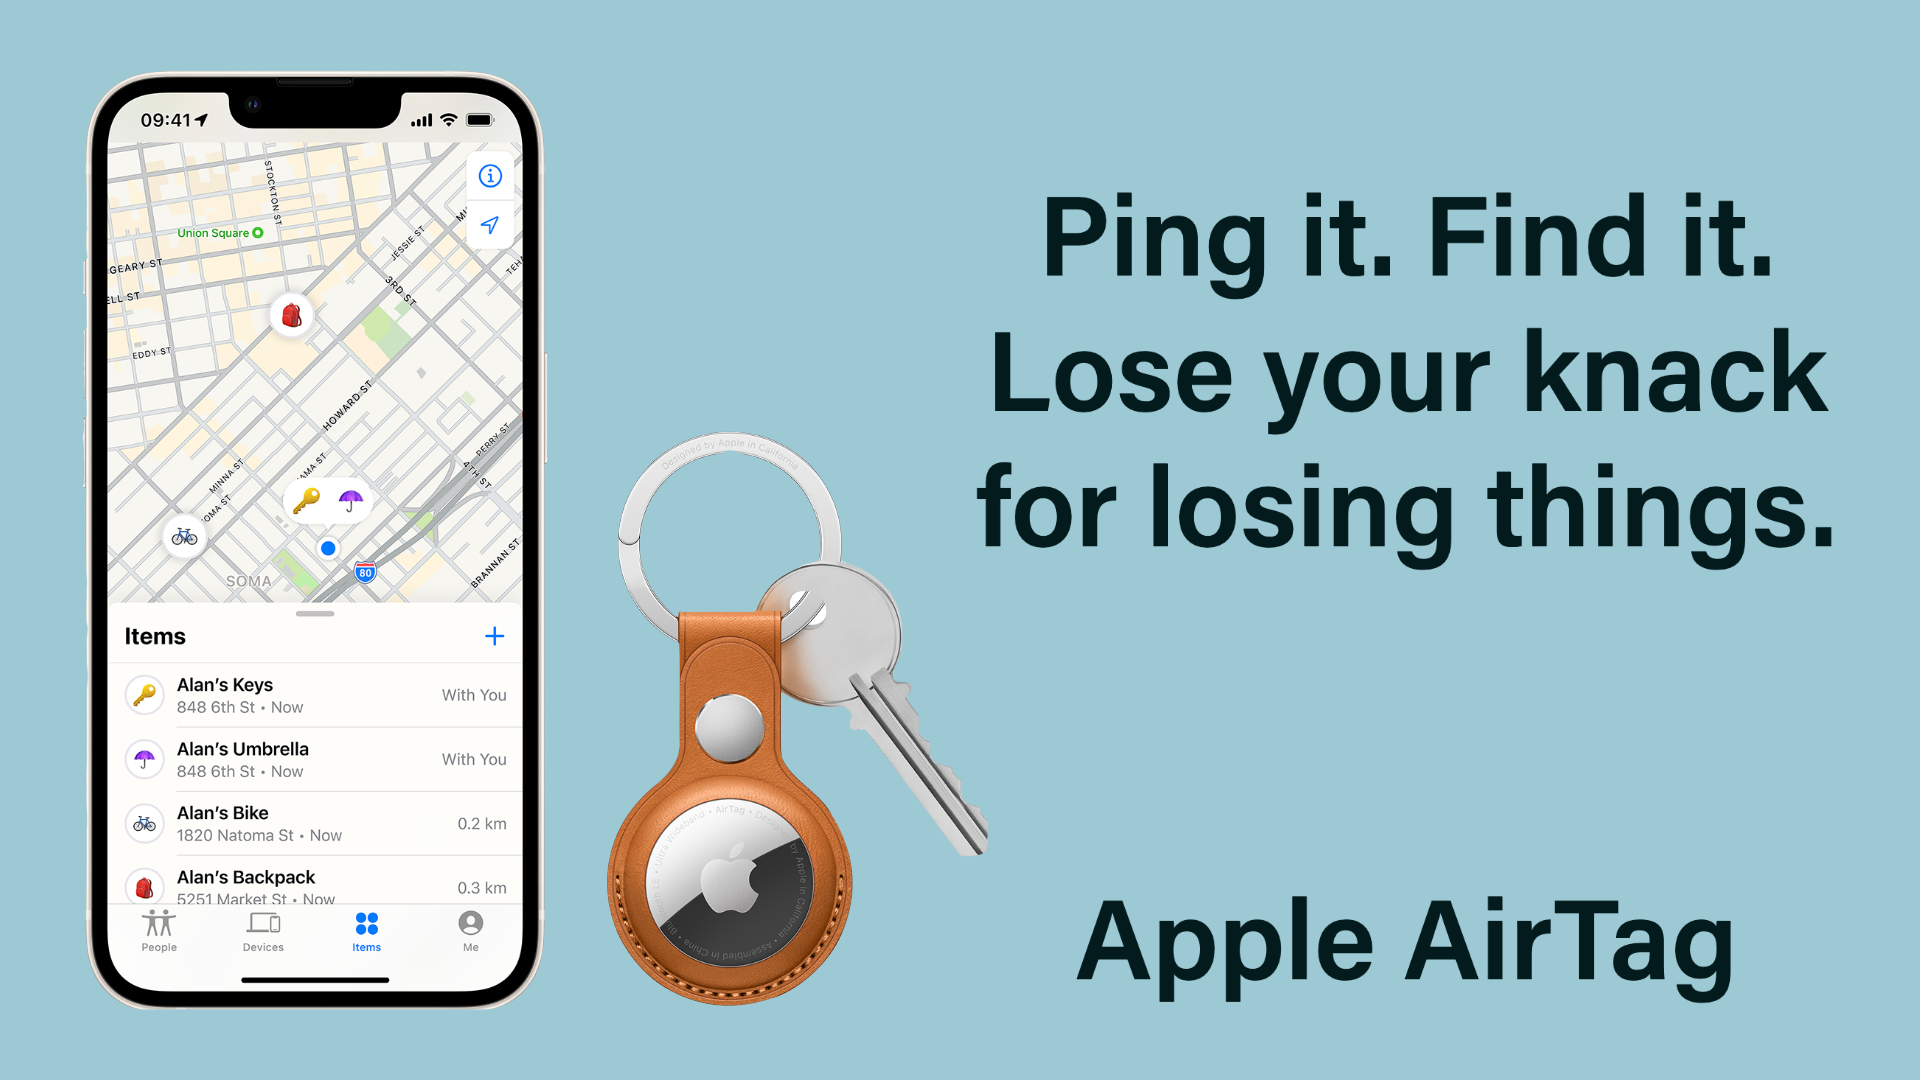 Ping it. Find it. Lose your knack for losing things.